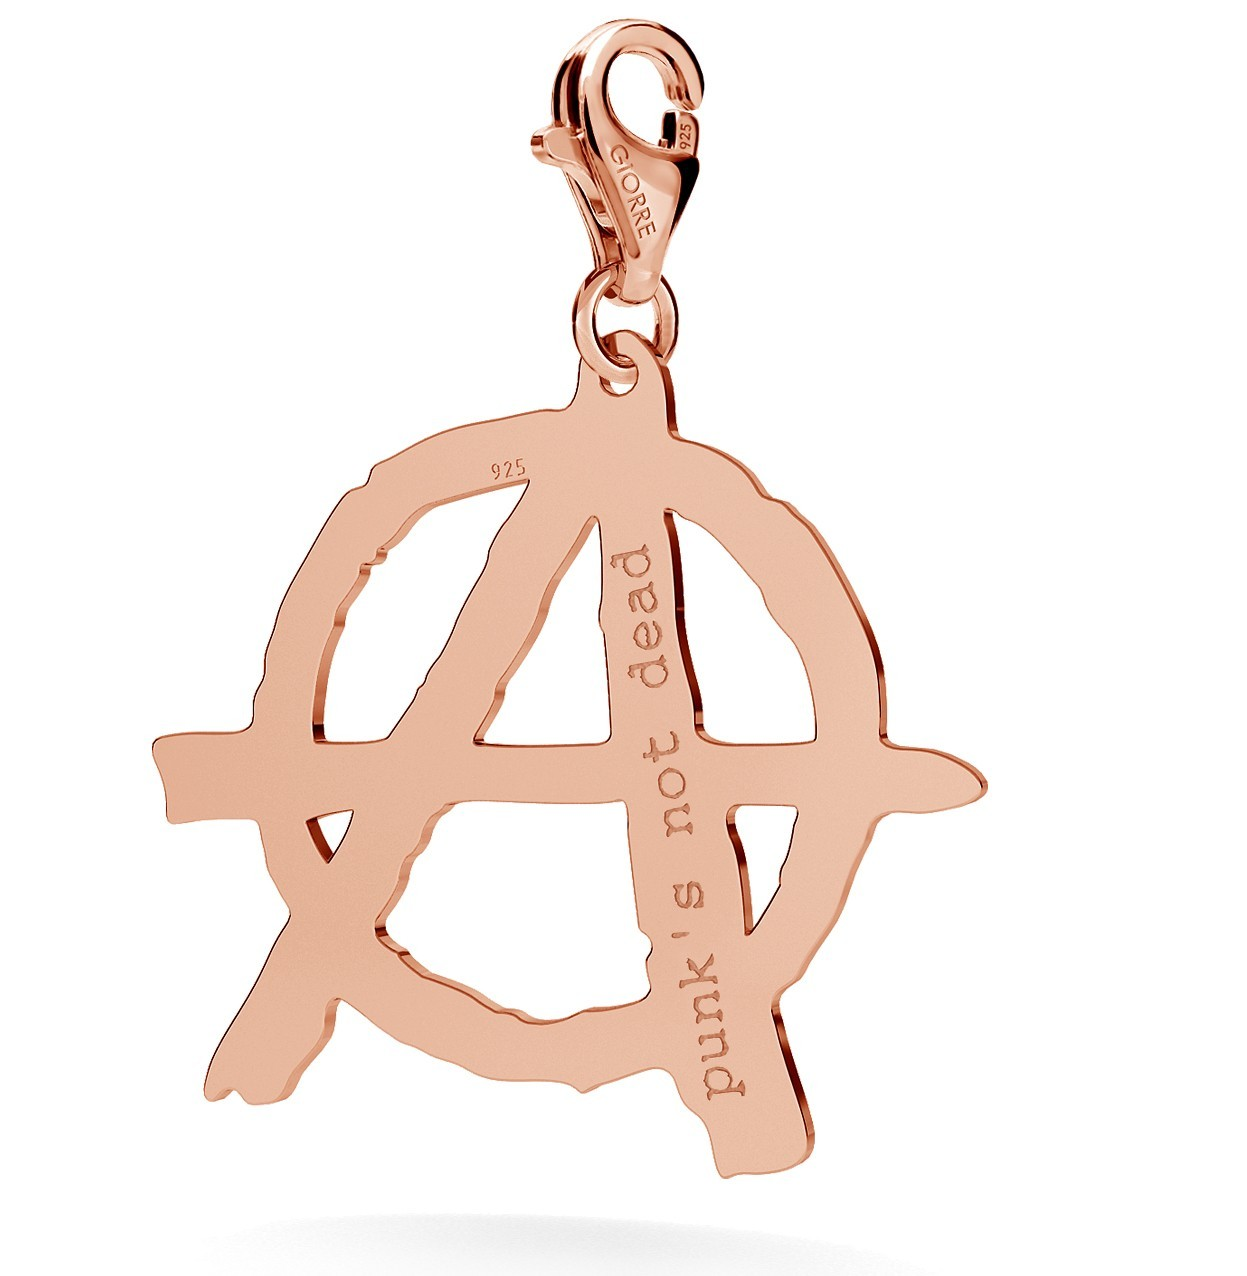 CHARM 135, ANARCHY SYMBOL WITH ENGRAVE, STERLING SILVER (925) RHODIUM OR GOLD PLATED